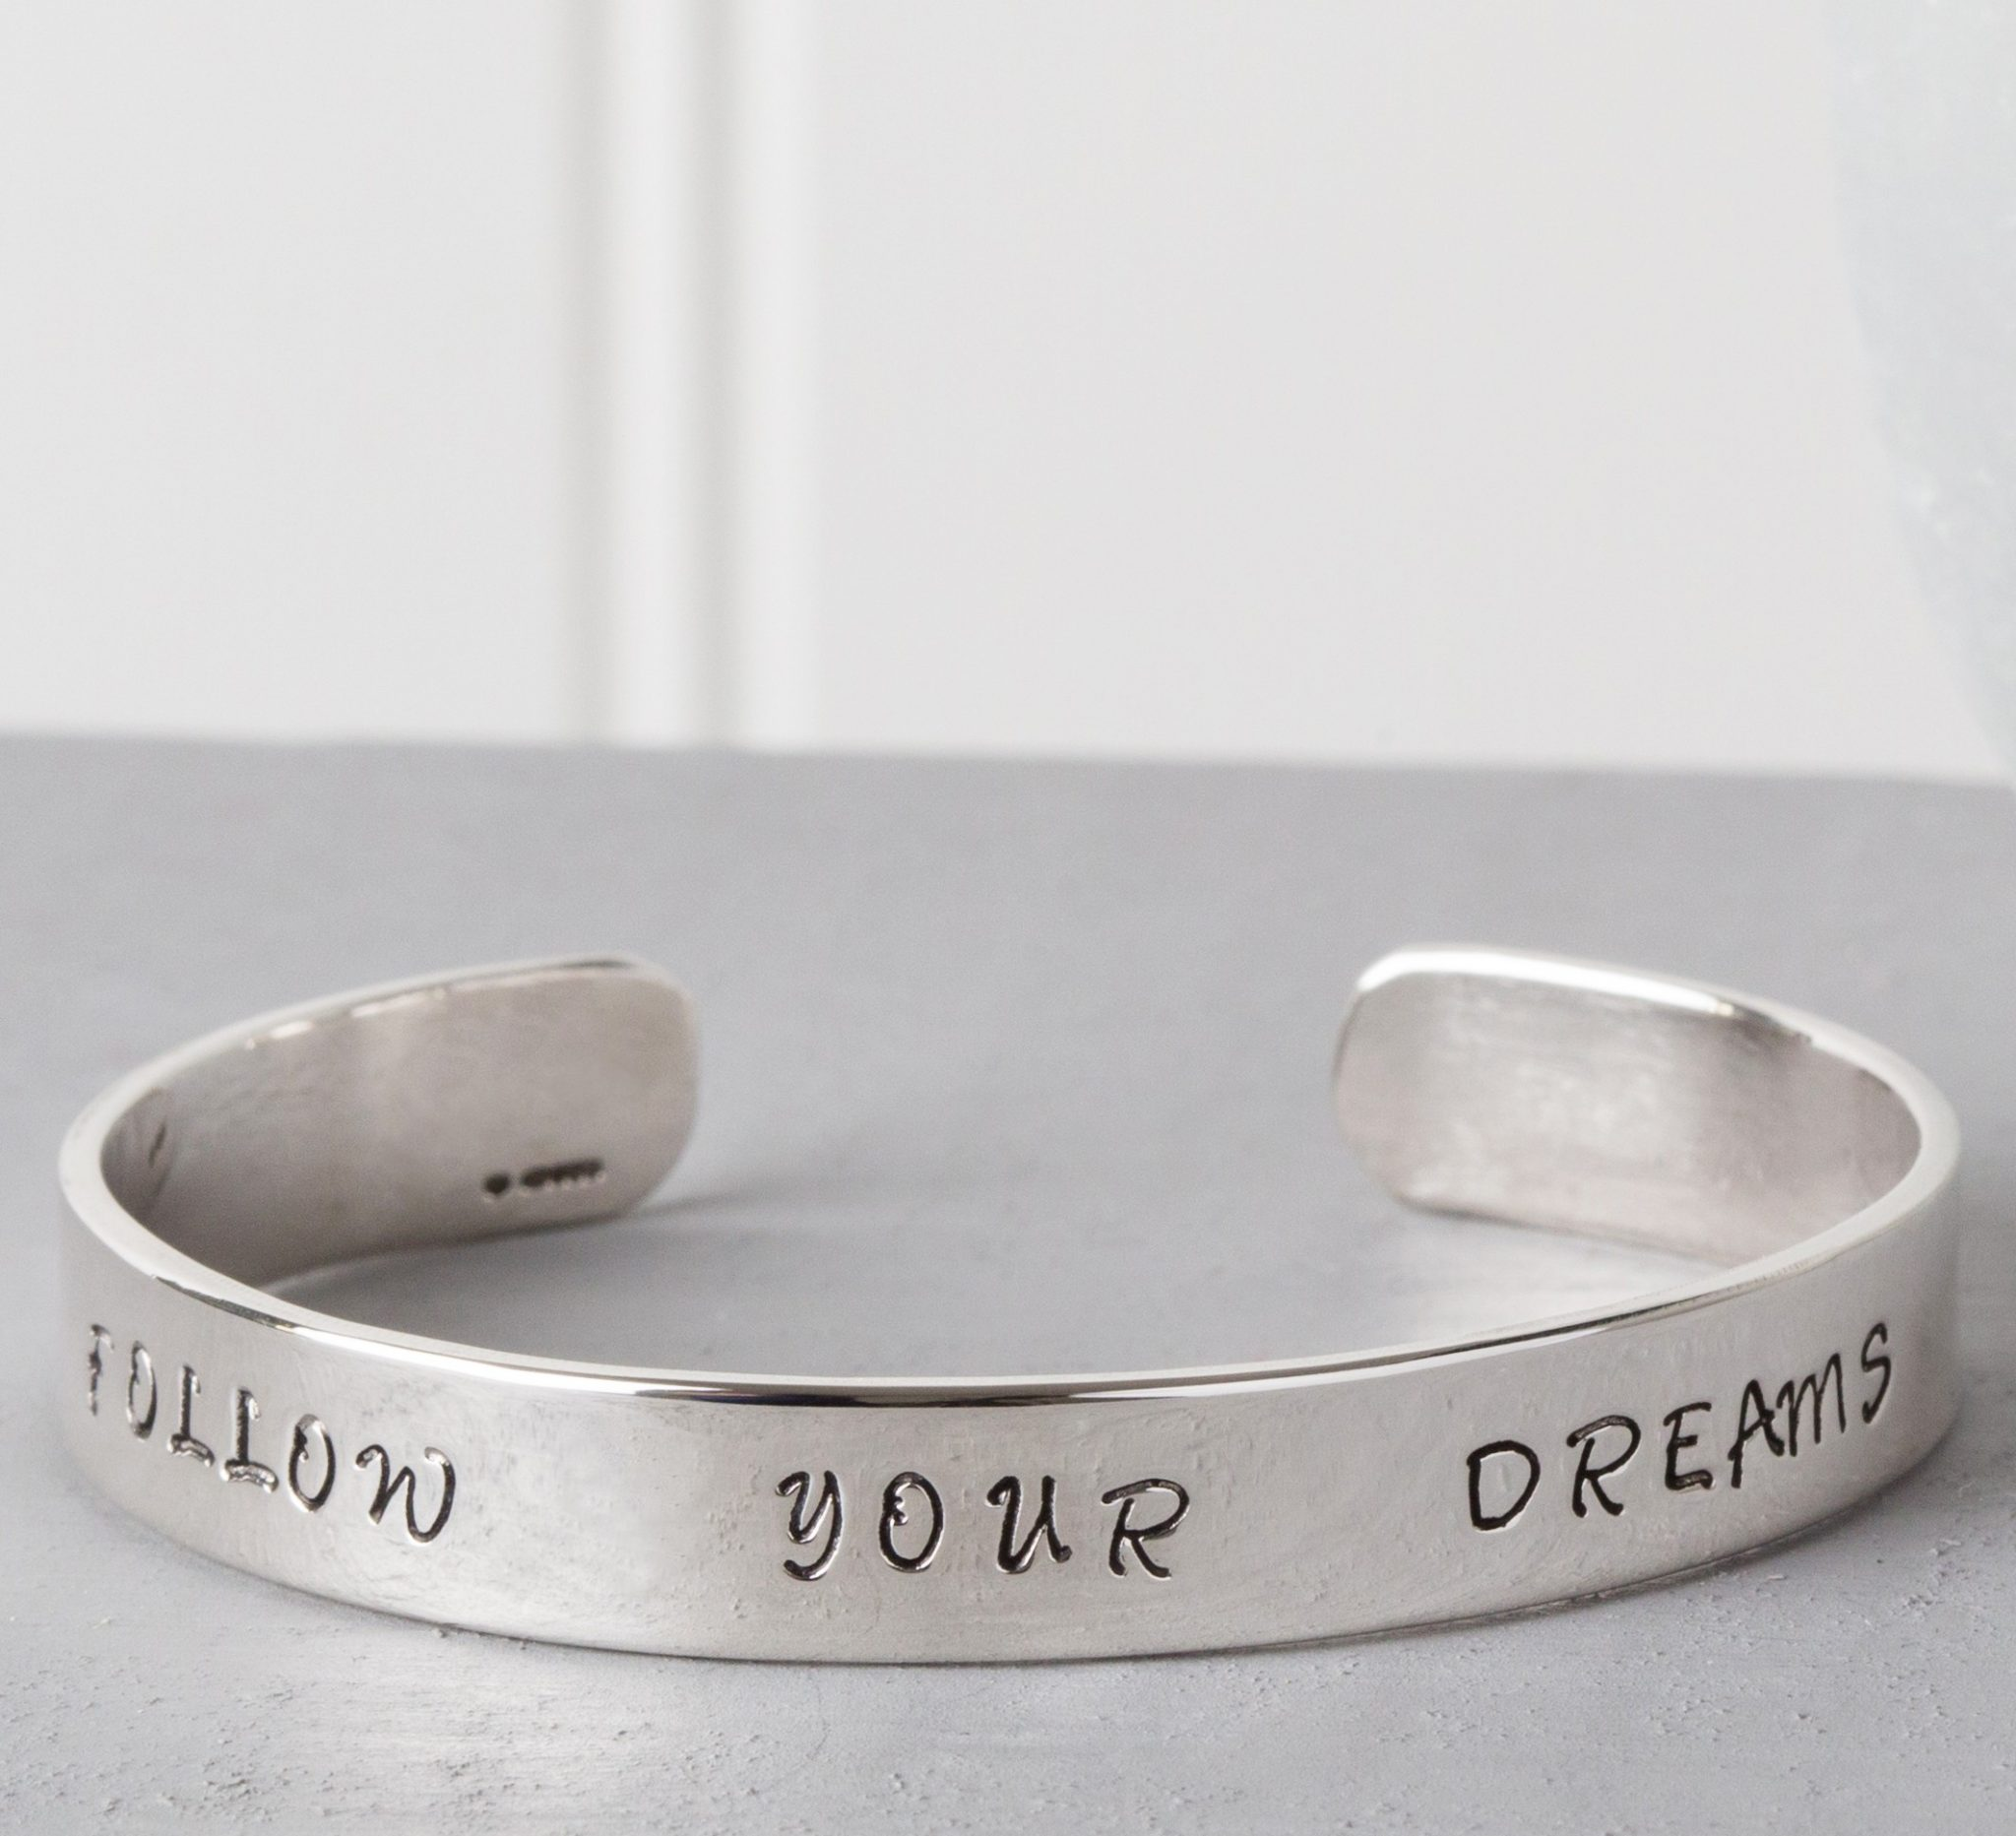 follow your dream cuff bangle